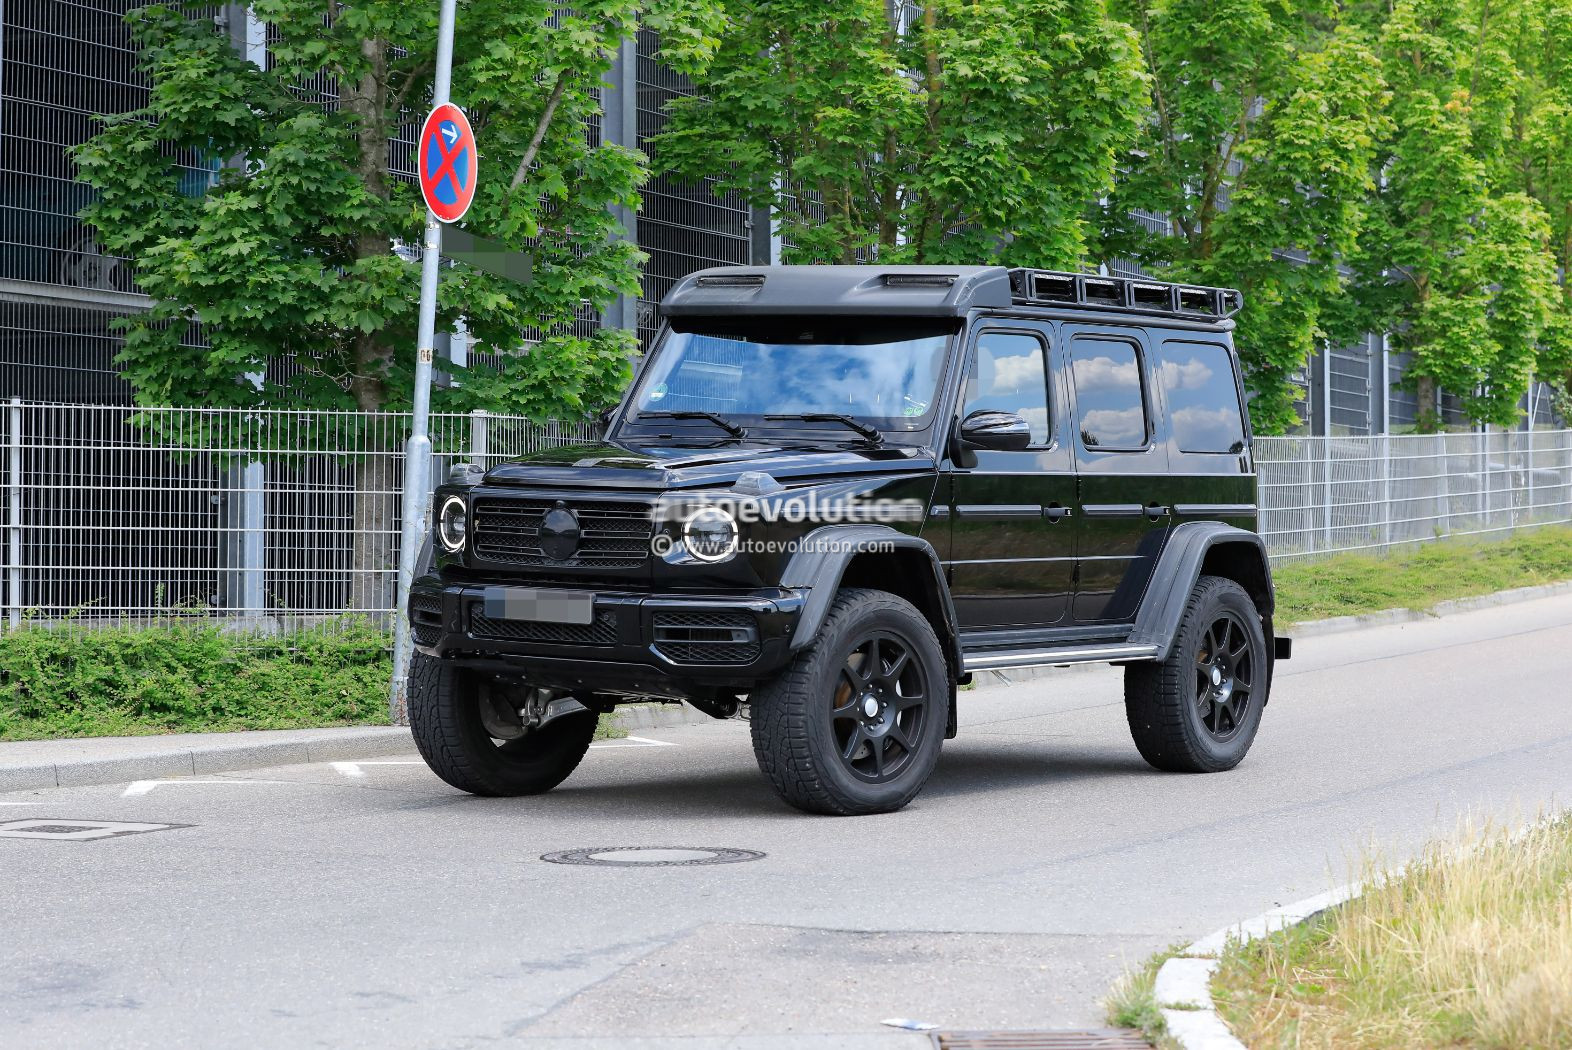 Undisguised 2022 Mercedes Benz G Class 4x4 Squared Has One Portal Axle Left Autoevolution